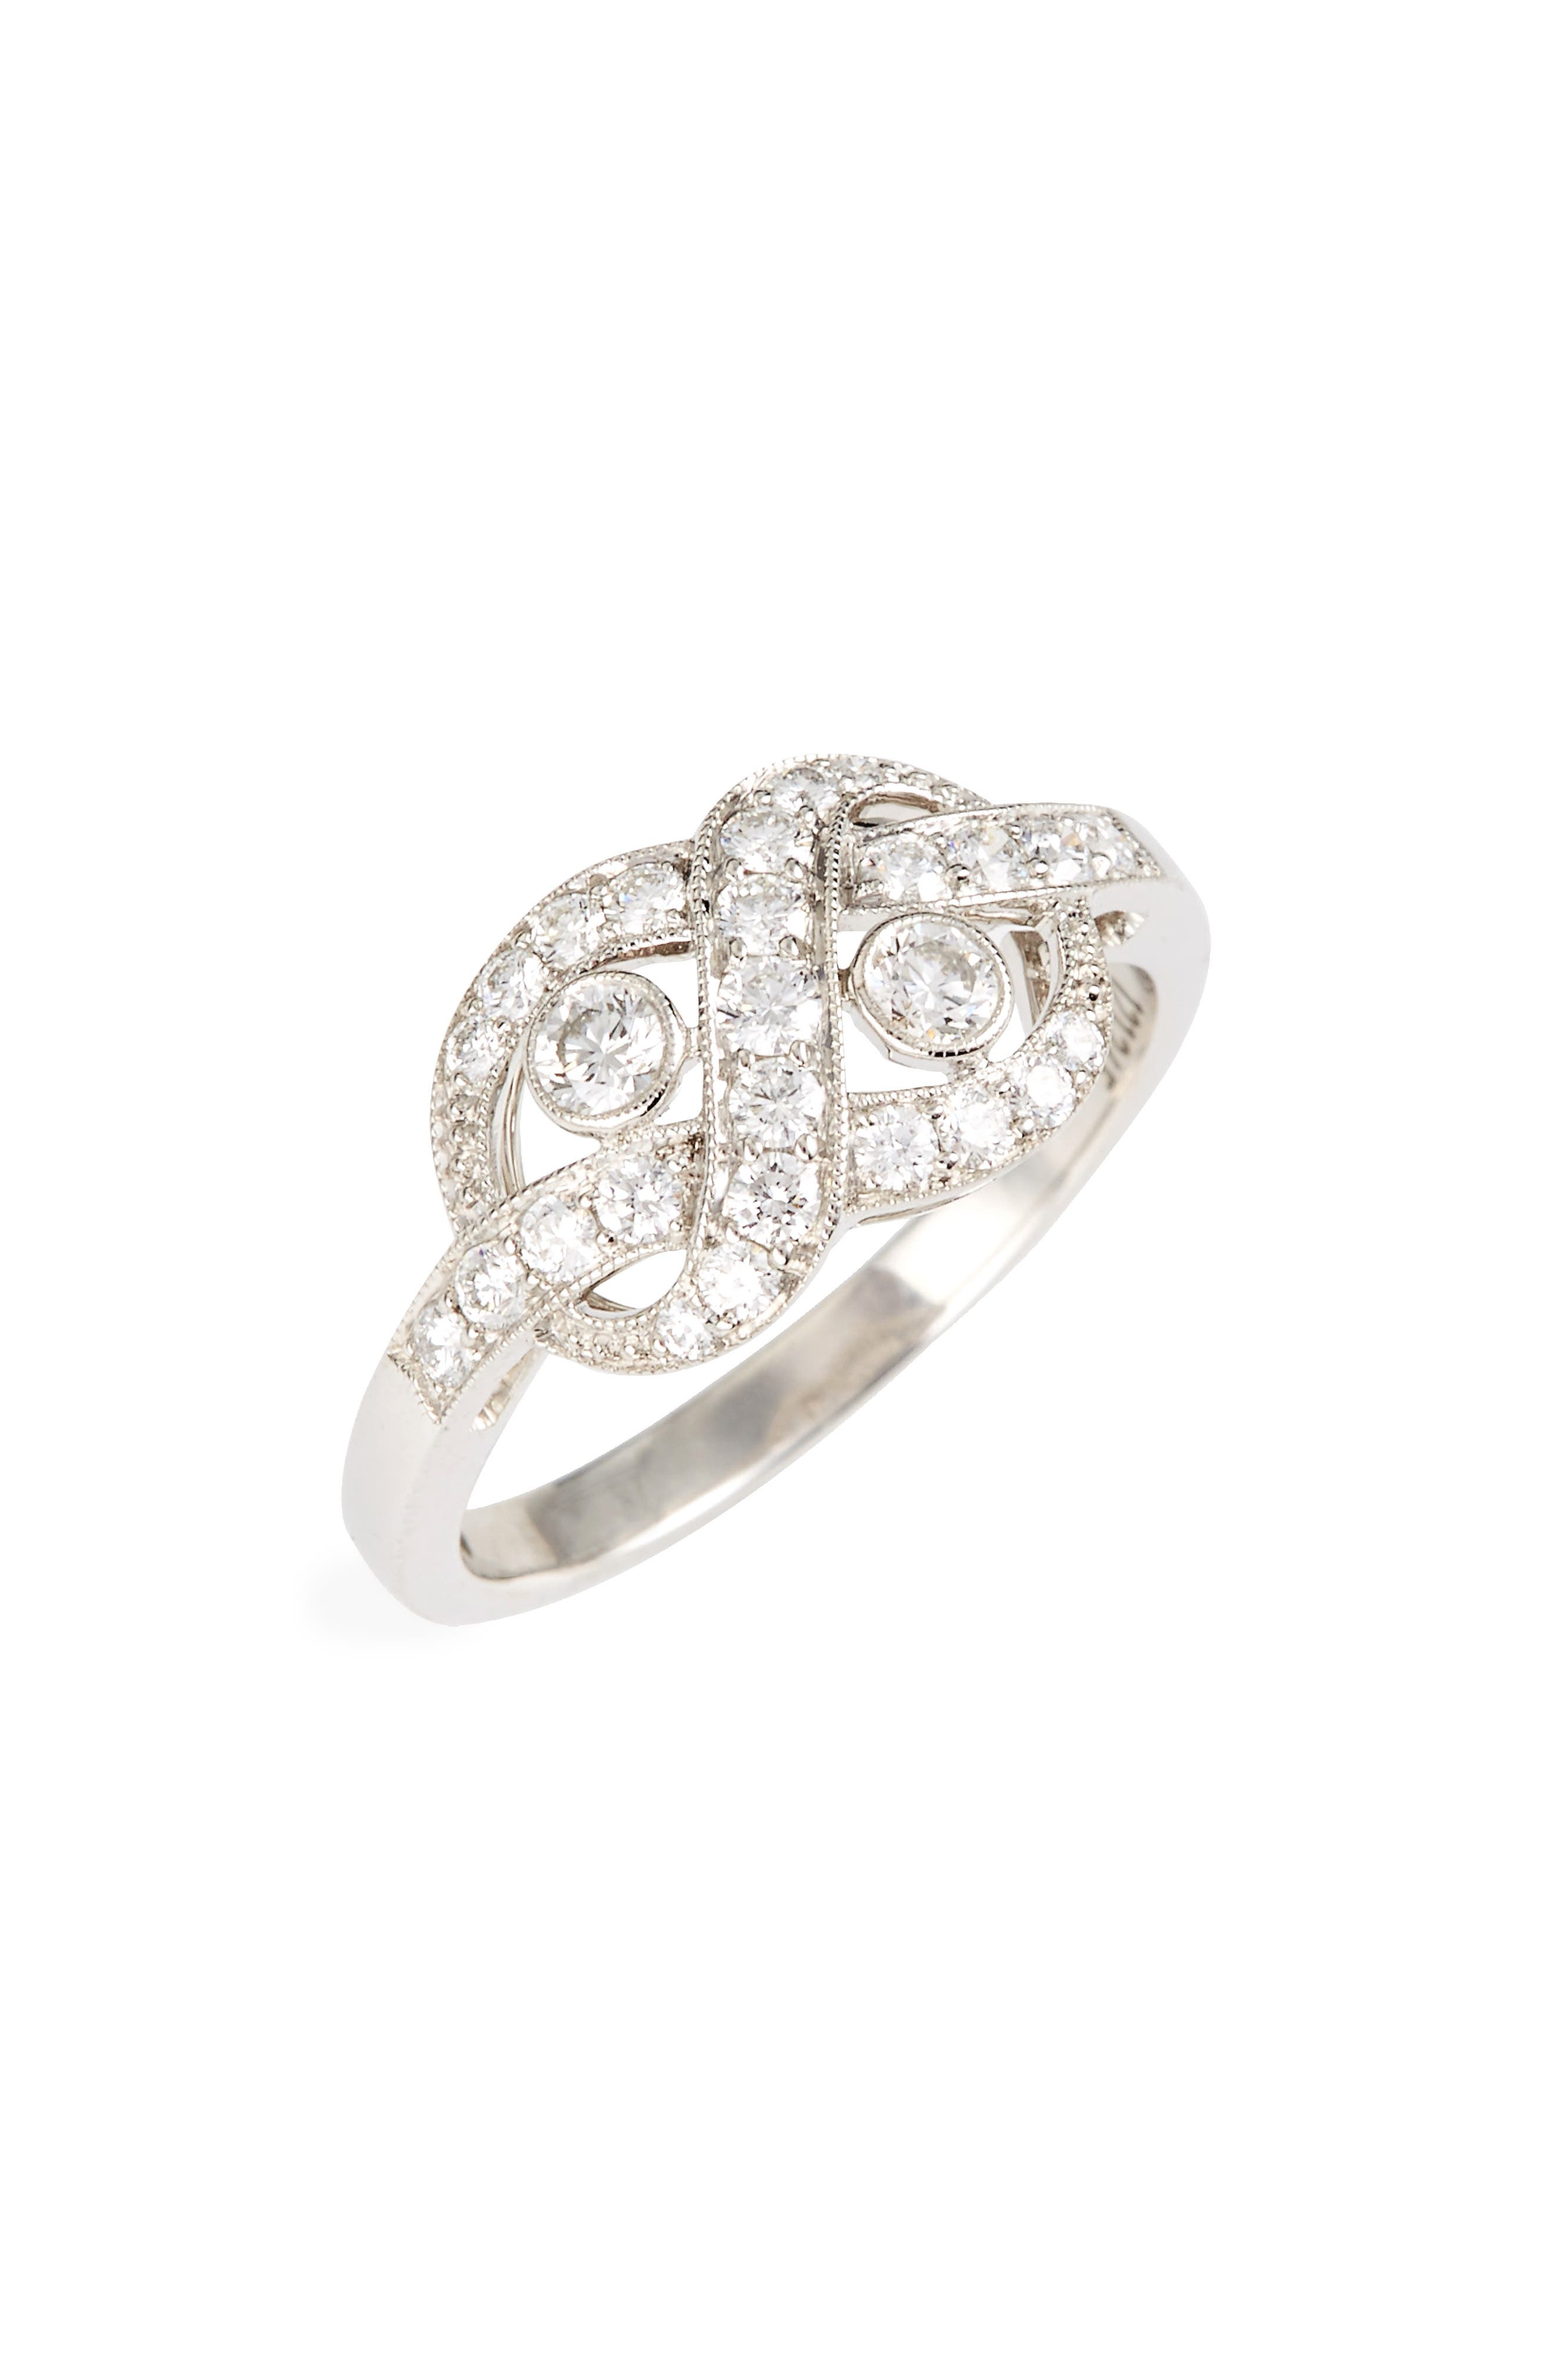 Main Image - Kwiat Diamond Knot Ring